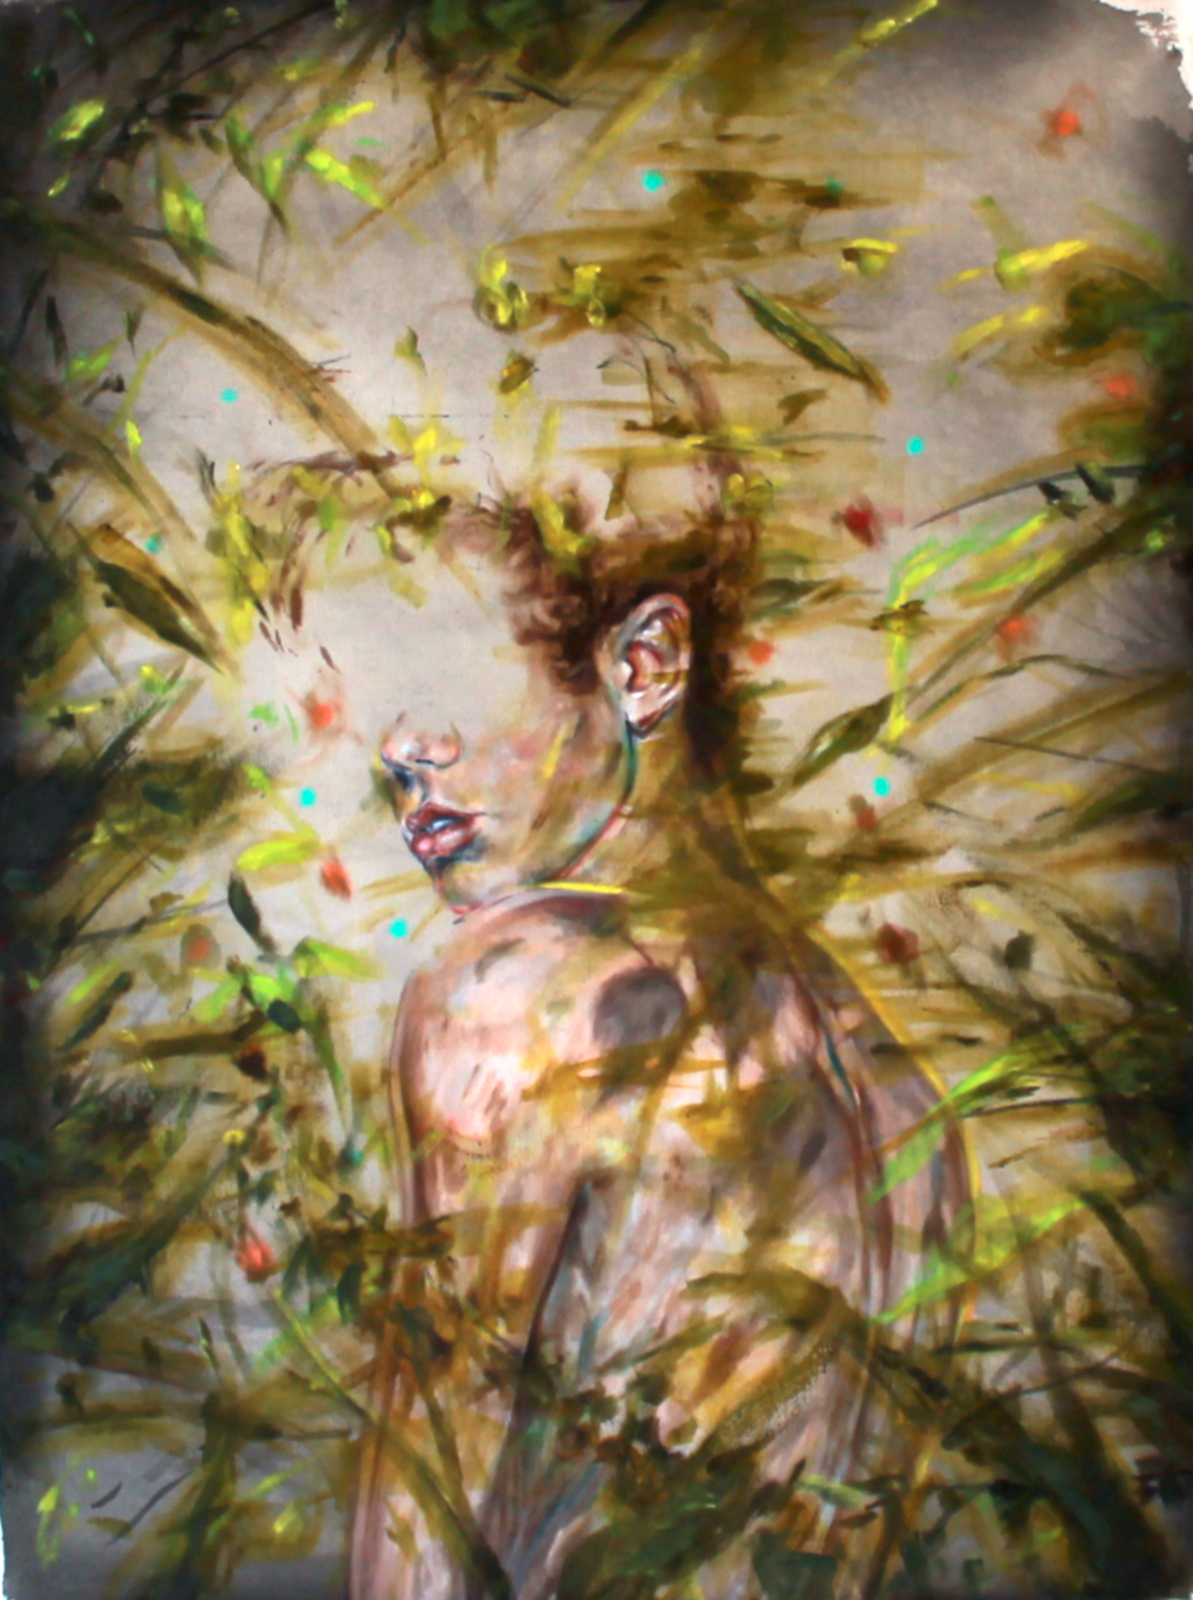 BIRDSNEVERBORED_PAUL_DEFLORIAN_And-Tell-You-About-The-Tree-Angel-Enchanted-Forest-Boy-Oil-On-Canvas-2014-1.jpg